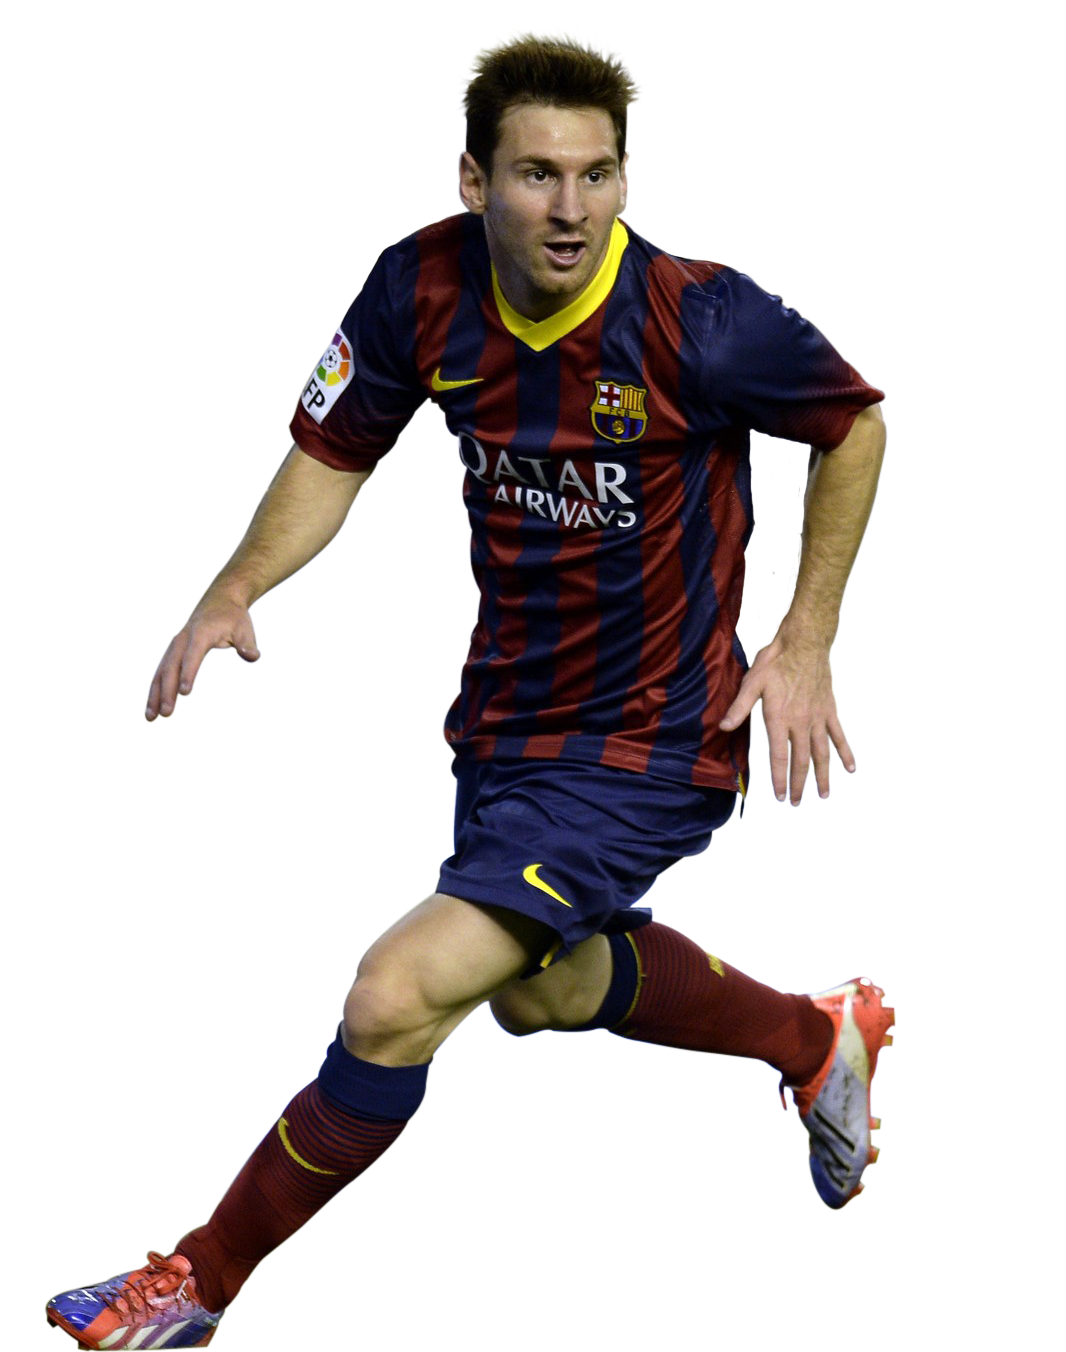 lionel messi clipart 20 free Cliparts | Download images on ...